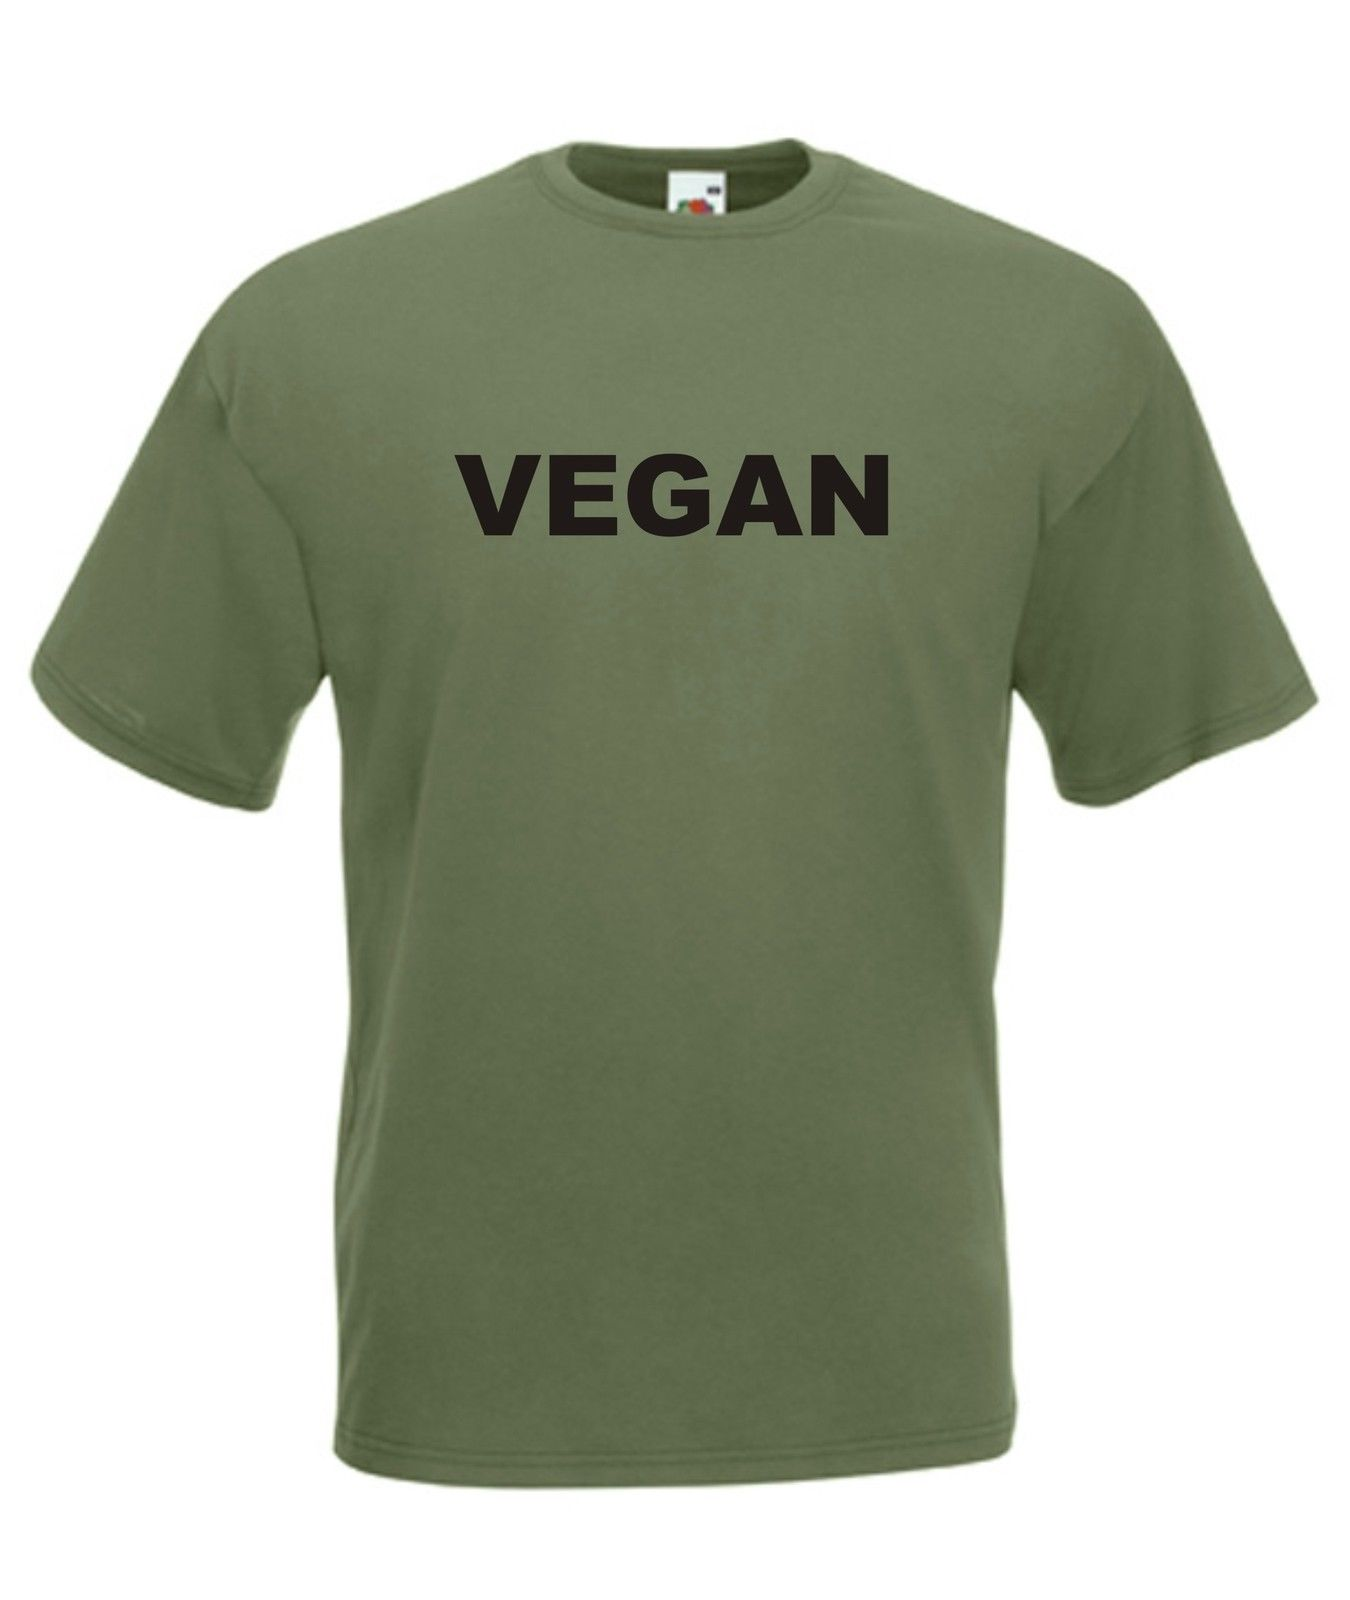 VEGAN T SHIRT PRINTED T SHIRT 12 COLOURS 8 SIZES NEW New T Shirts Funny Tops Tee New Unisex Funny High Quality Casual Printing in T Shirts from Men 39 s Clothing